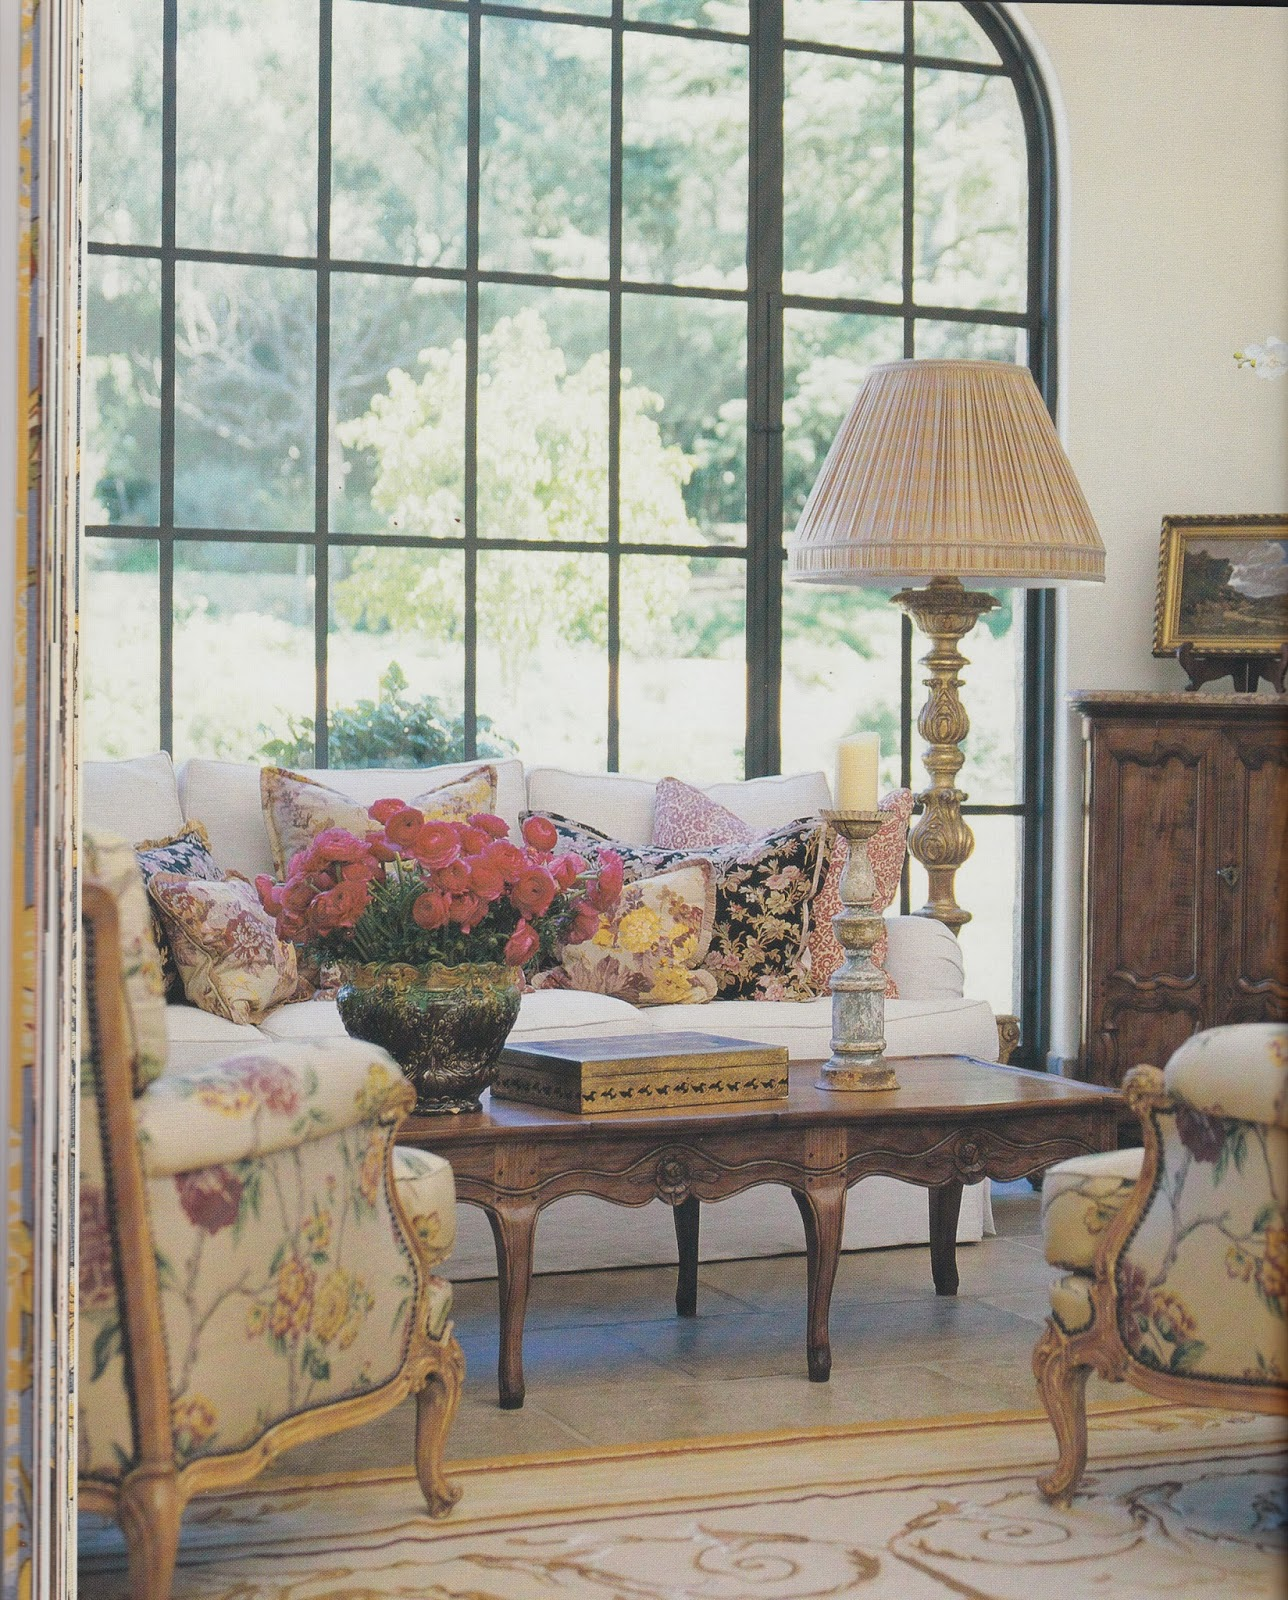 French Country Cottage Feature: Hydrangea Hill Cottage: French Country